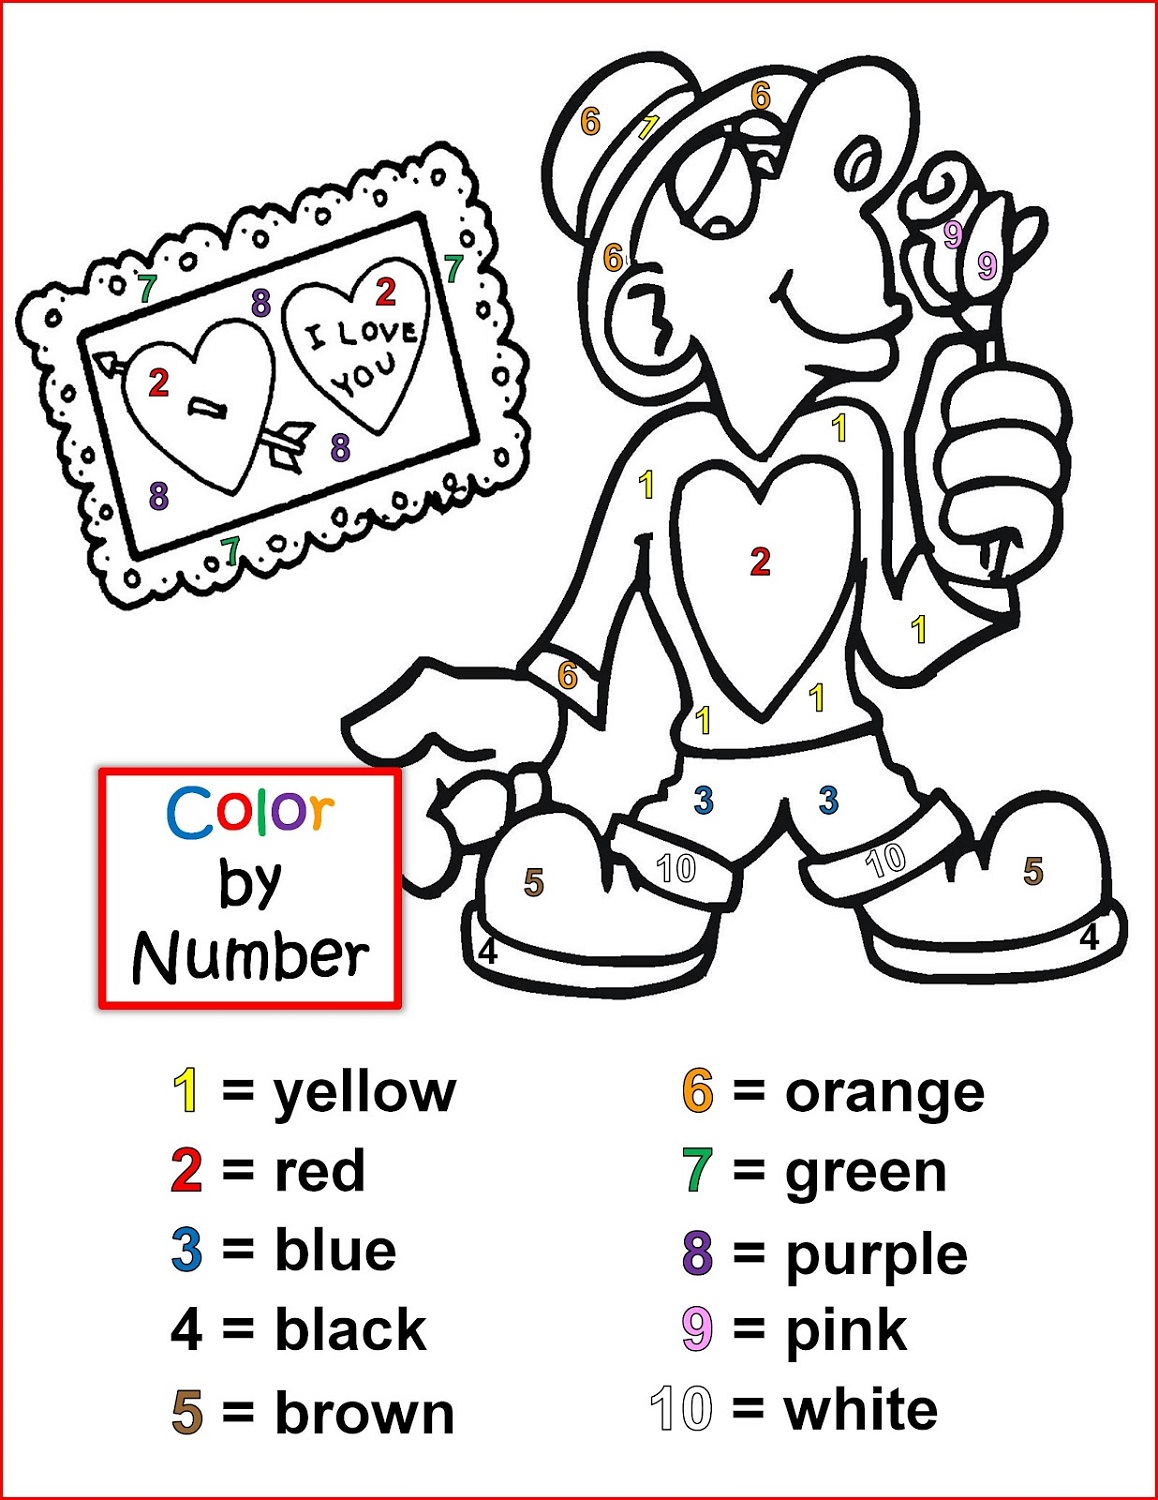 color-by-number-worksheet-valentine